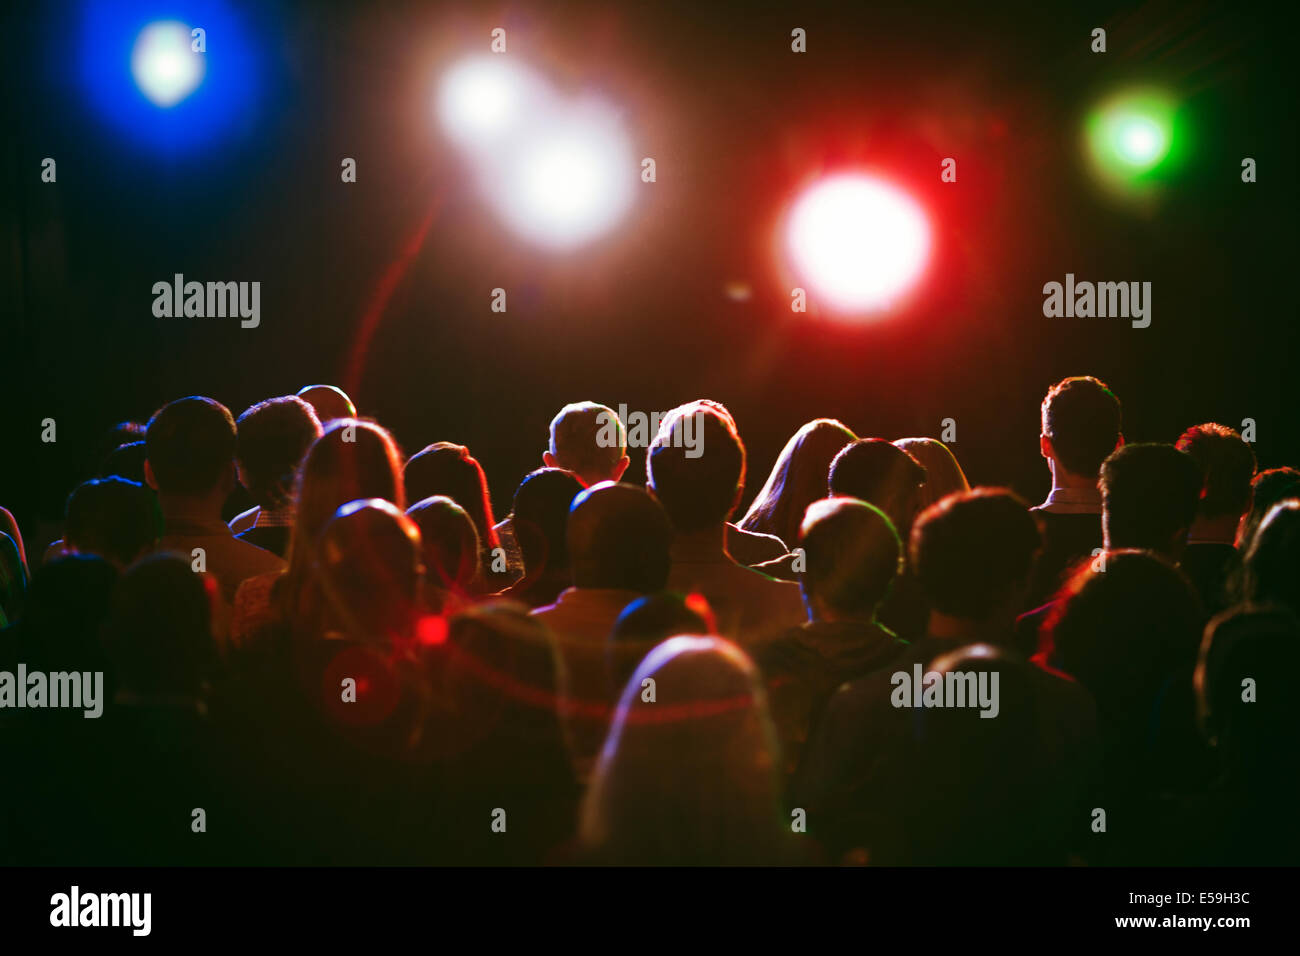 Foule en attente de concert Photo Stock